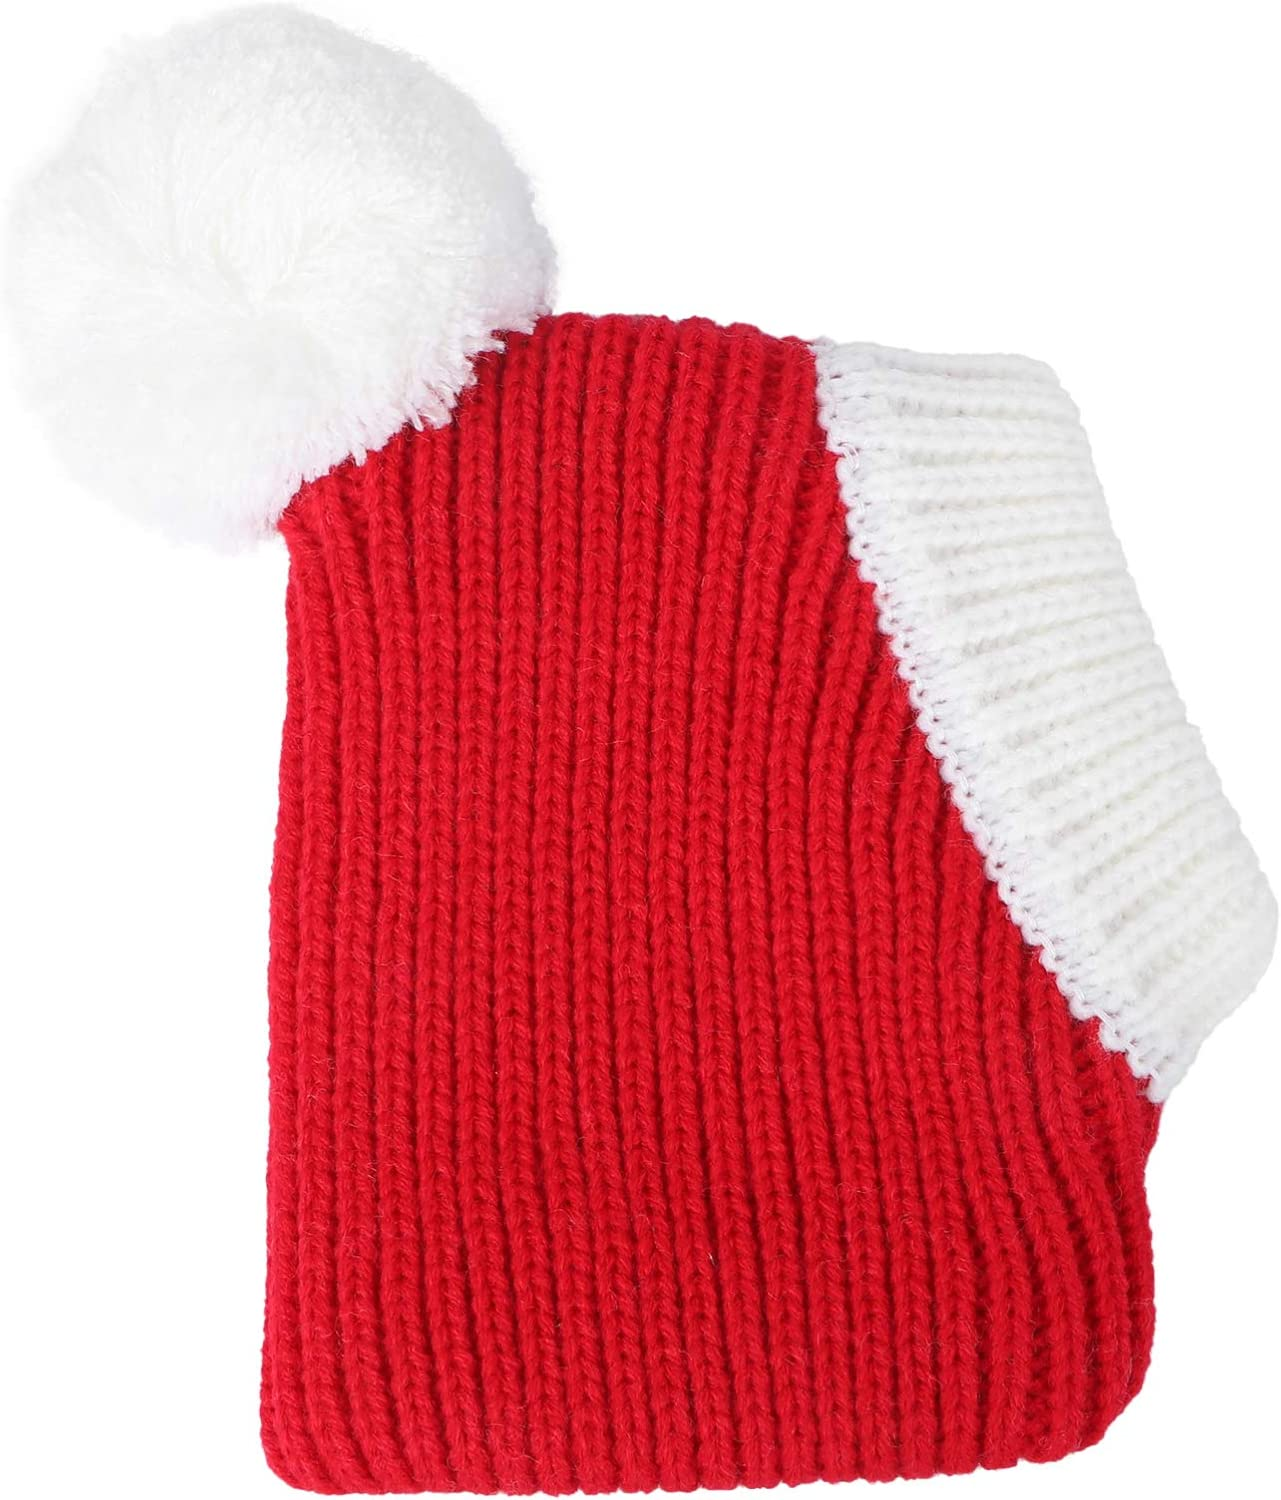 Animer and price revision Credence POPETPOP Funny Cat Dog Christmas - Adorable Hat Ou Pet